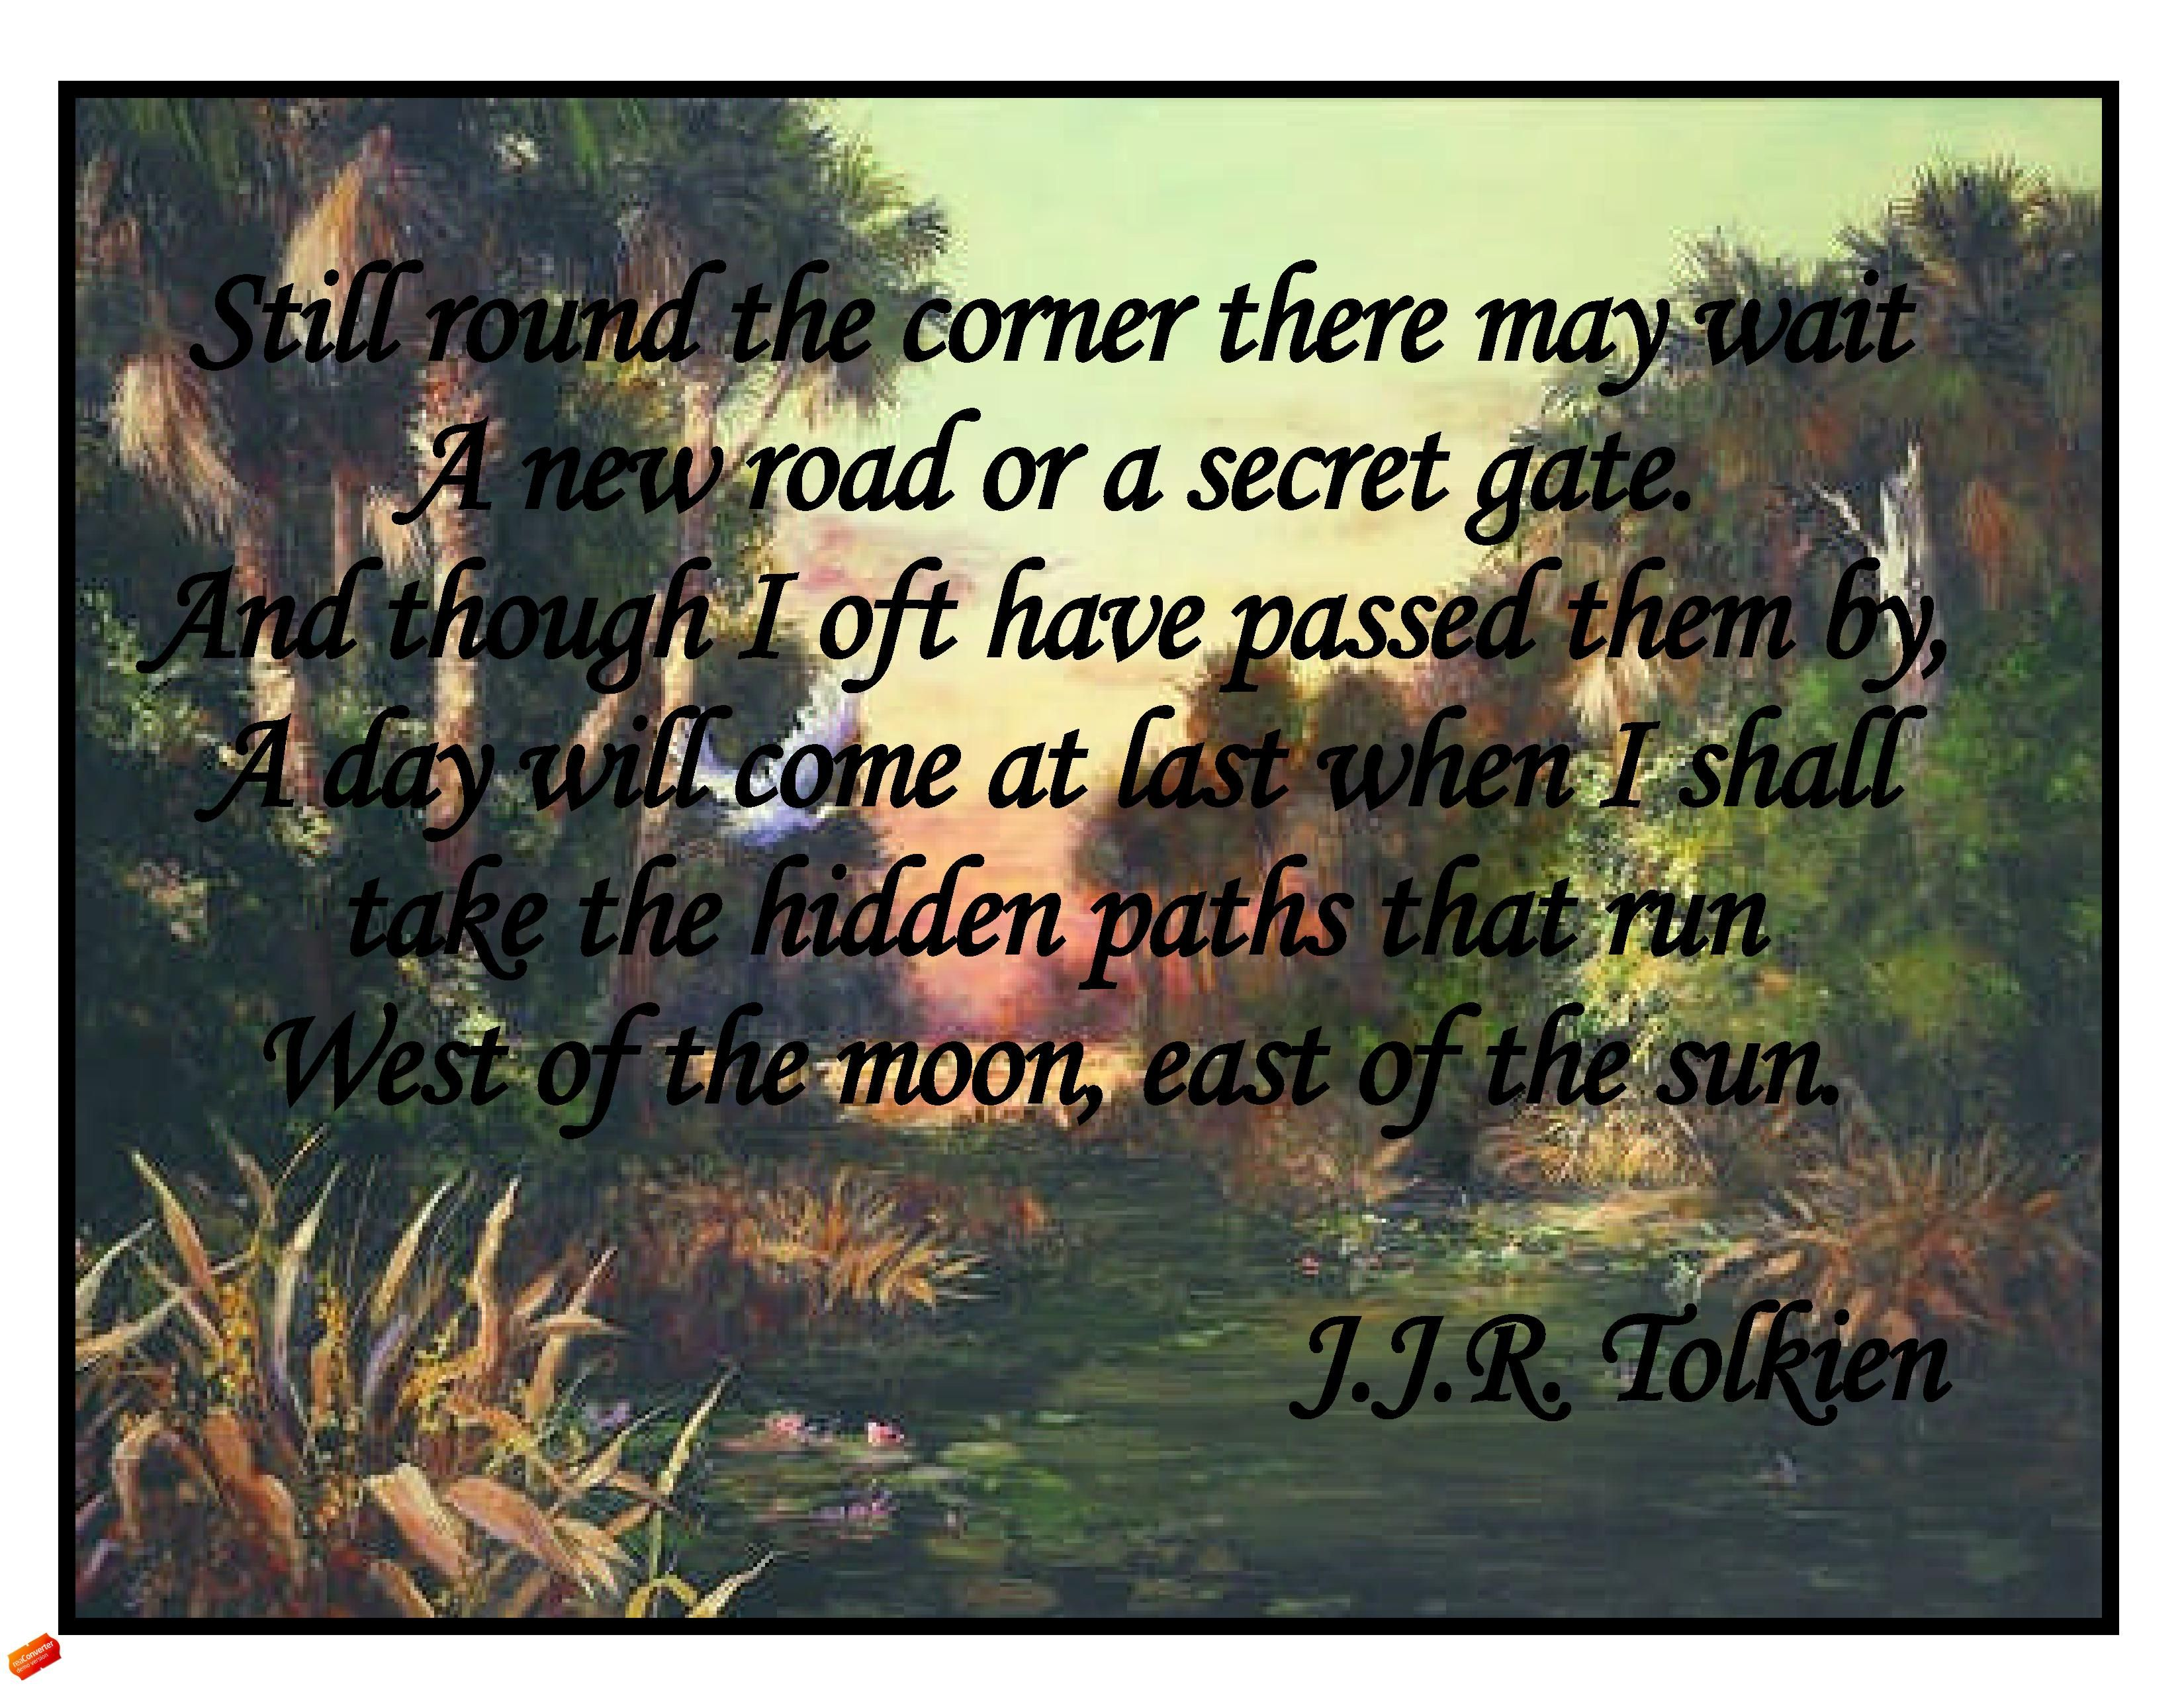 Tolkien has such magic with words...